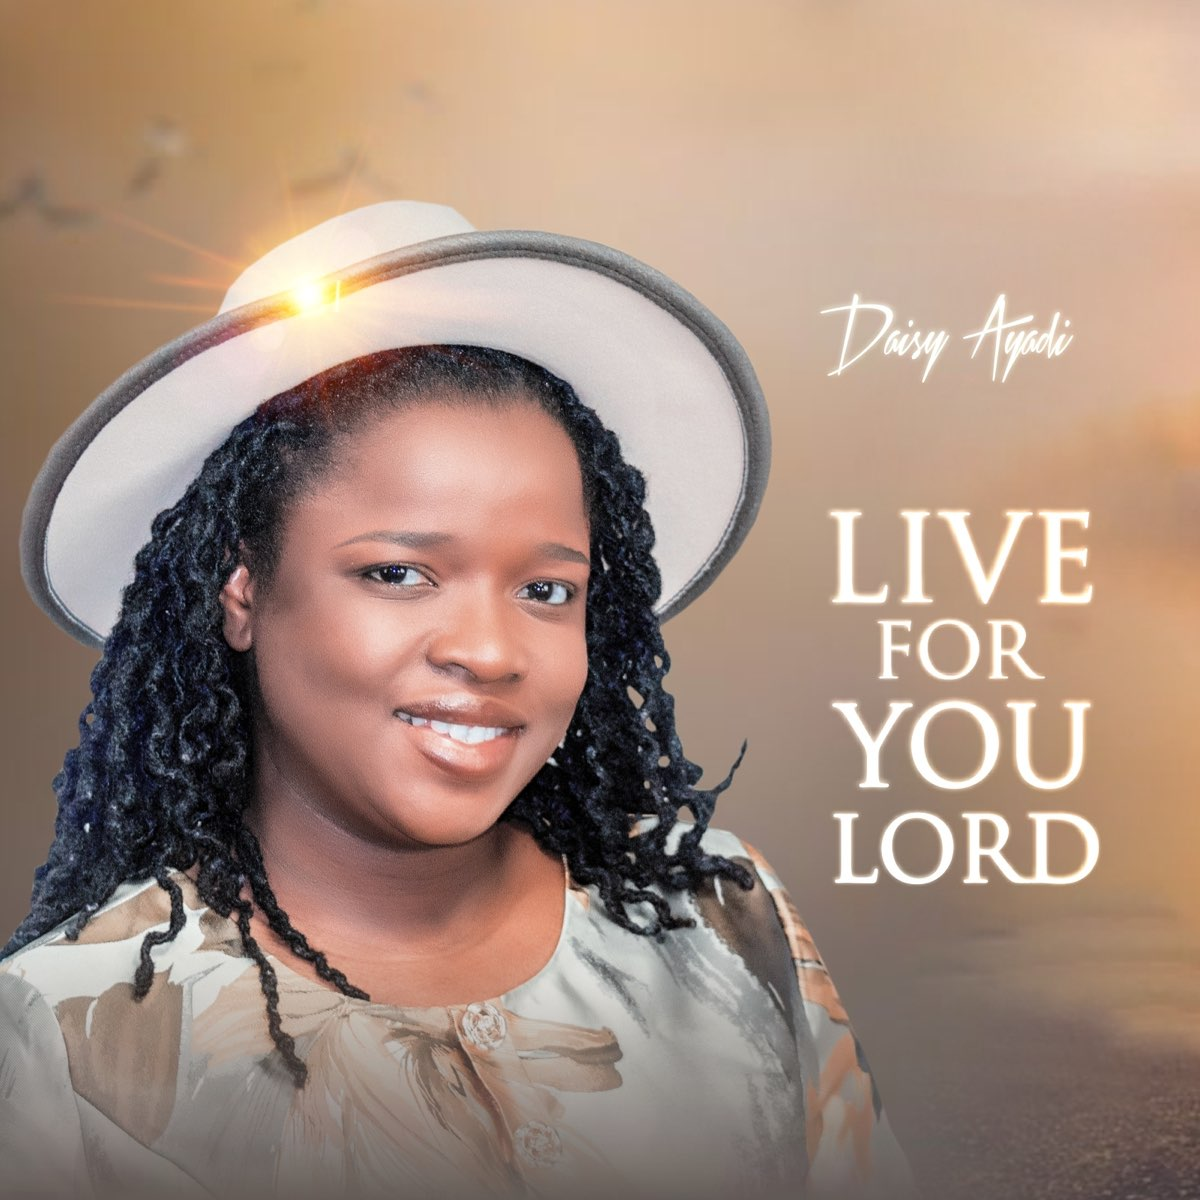 Listen to Live for You Lord - Single by Daisy Ayadi Image